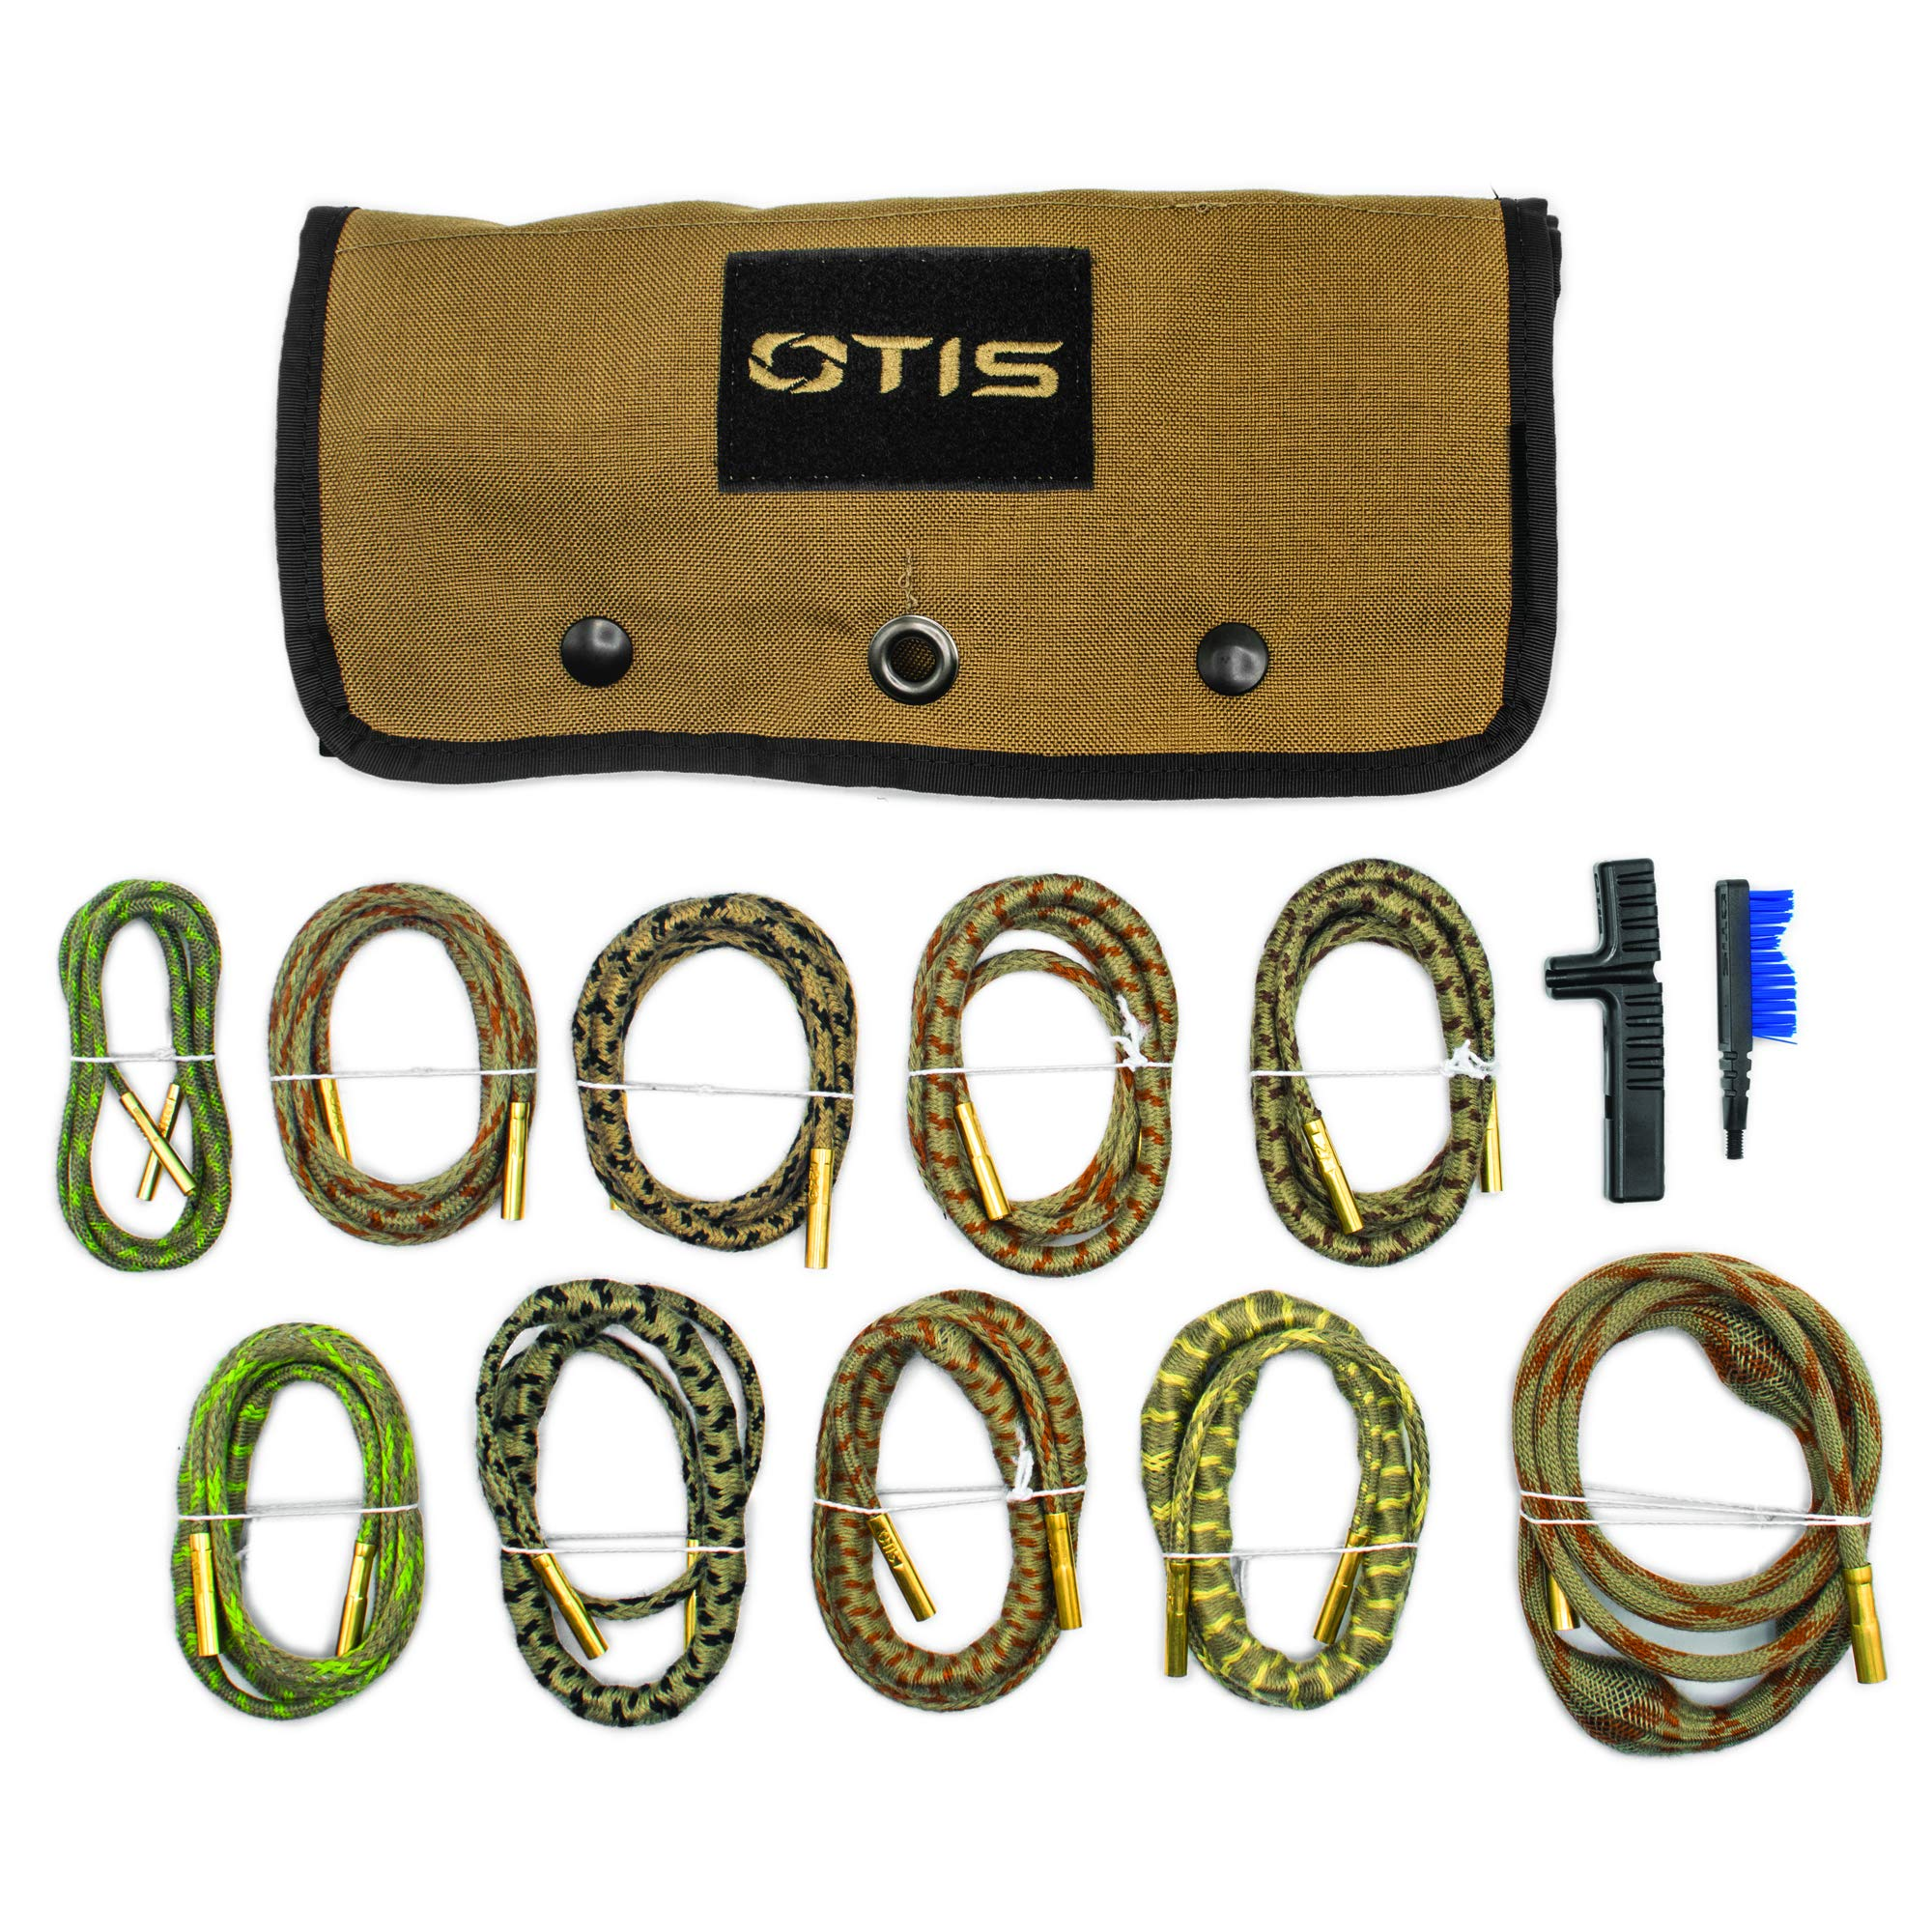 Otis Technology Ripcord Multi-Caliber 10pk with Hanging Carry Case USA Made by Otis Technology